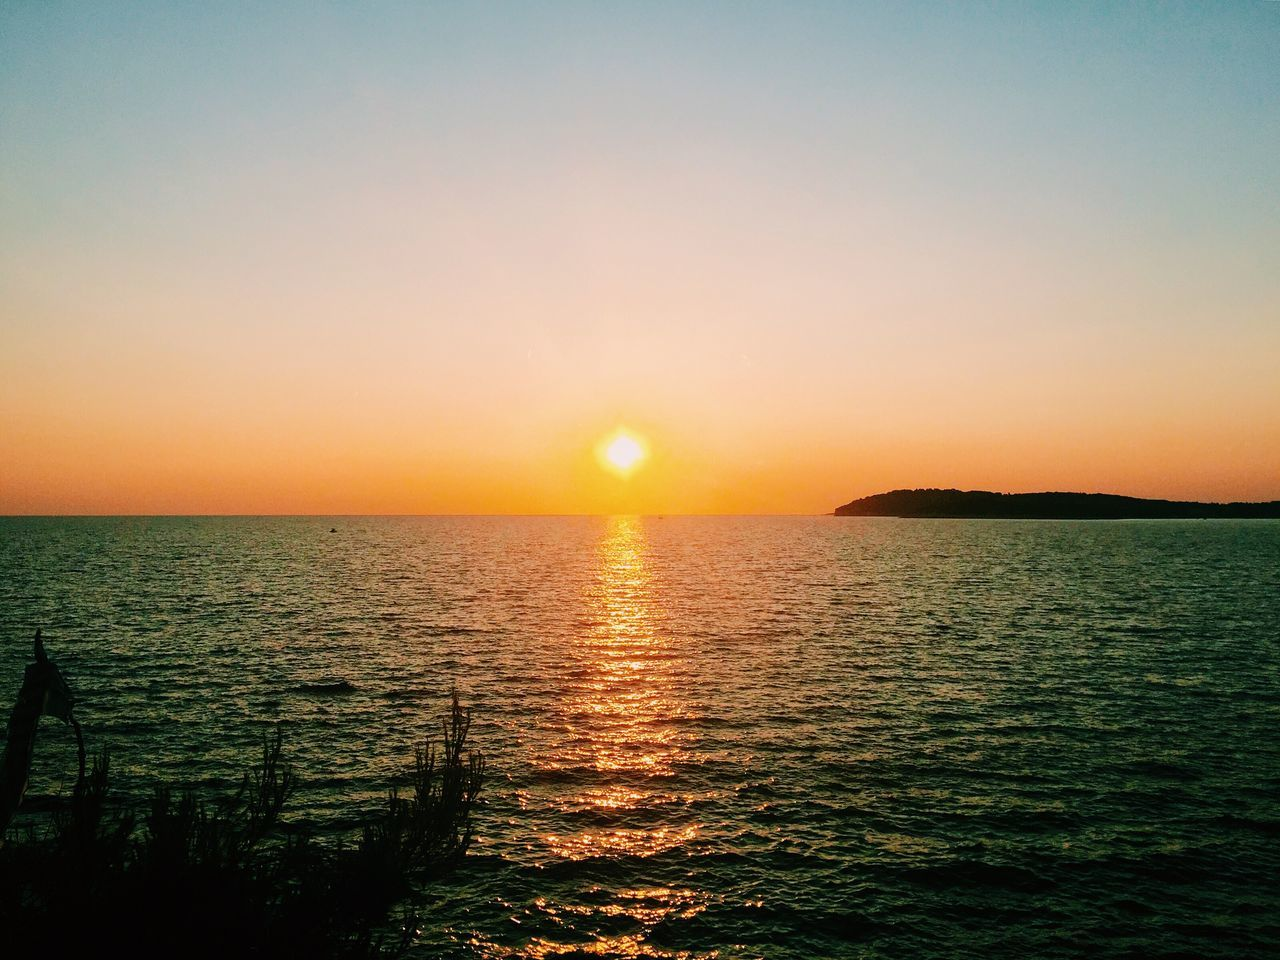 sunset, sun, sea, scenics, beauty in nature, nature, orange color, tranquil scene, tranquility, water, silhouette, idyllic, sunlight, sunbeam, sky, no people, reflection, horizon over water, outdoors, clear sky, rippled, vacations, beach, travel destinations